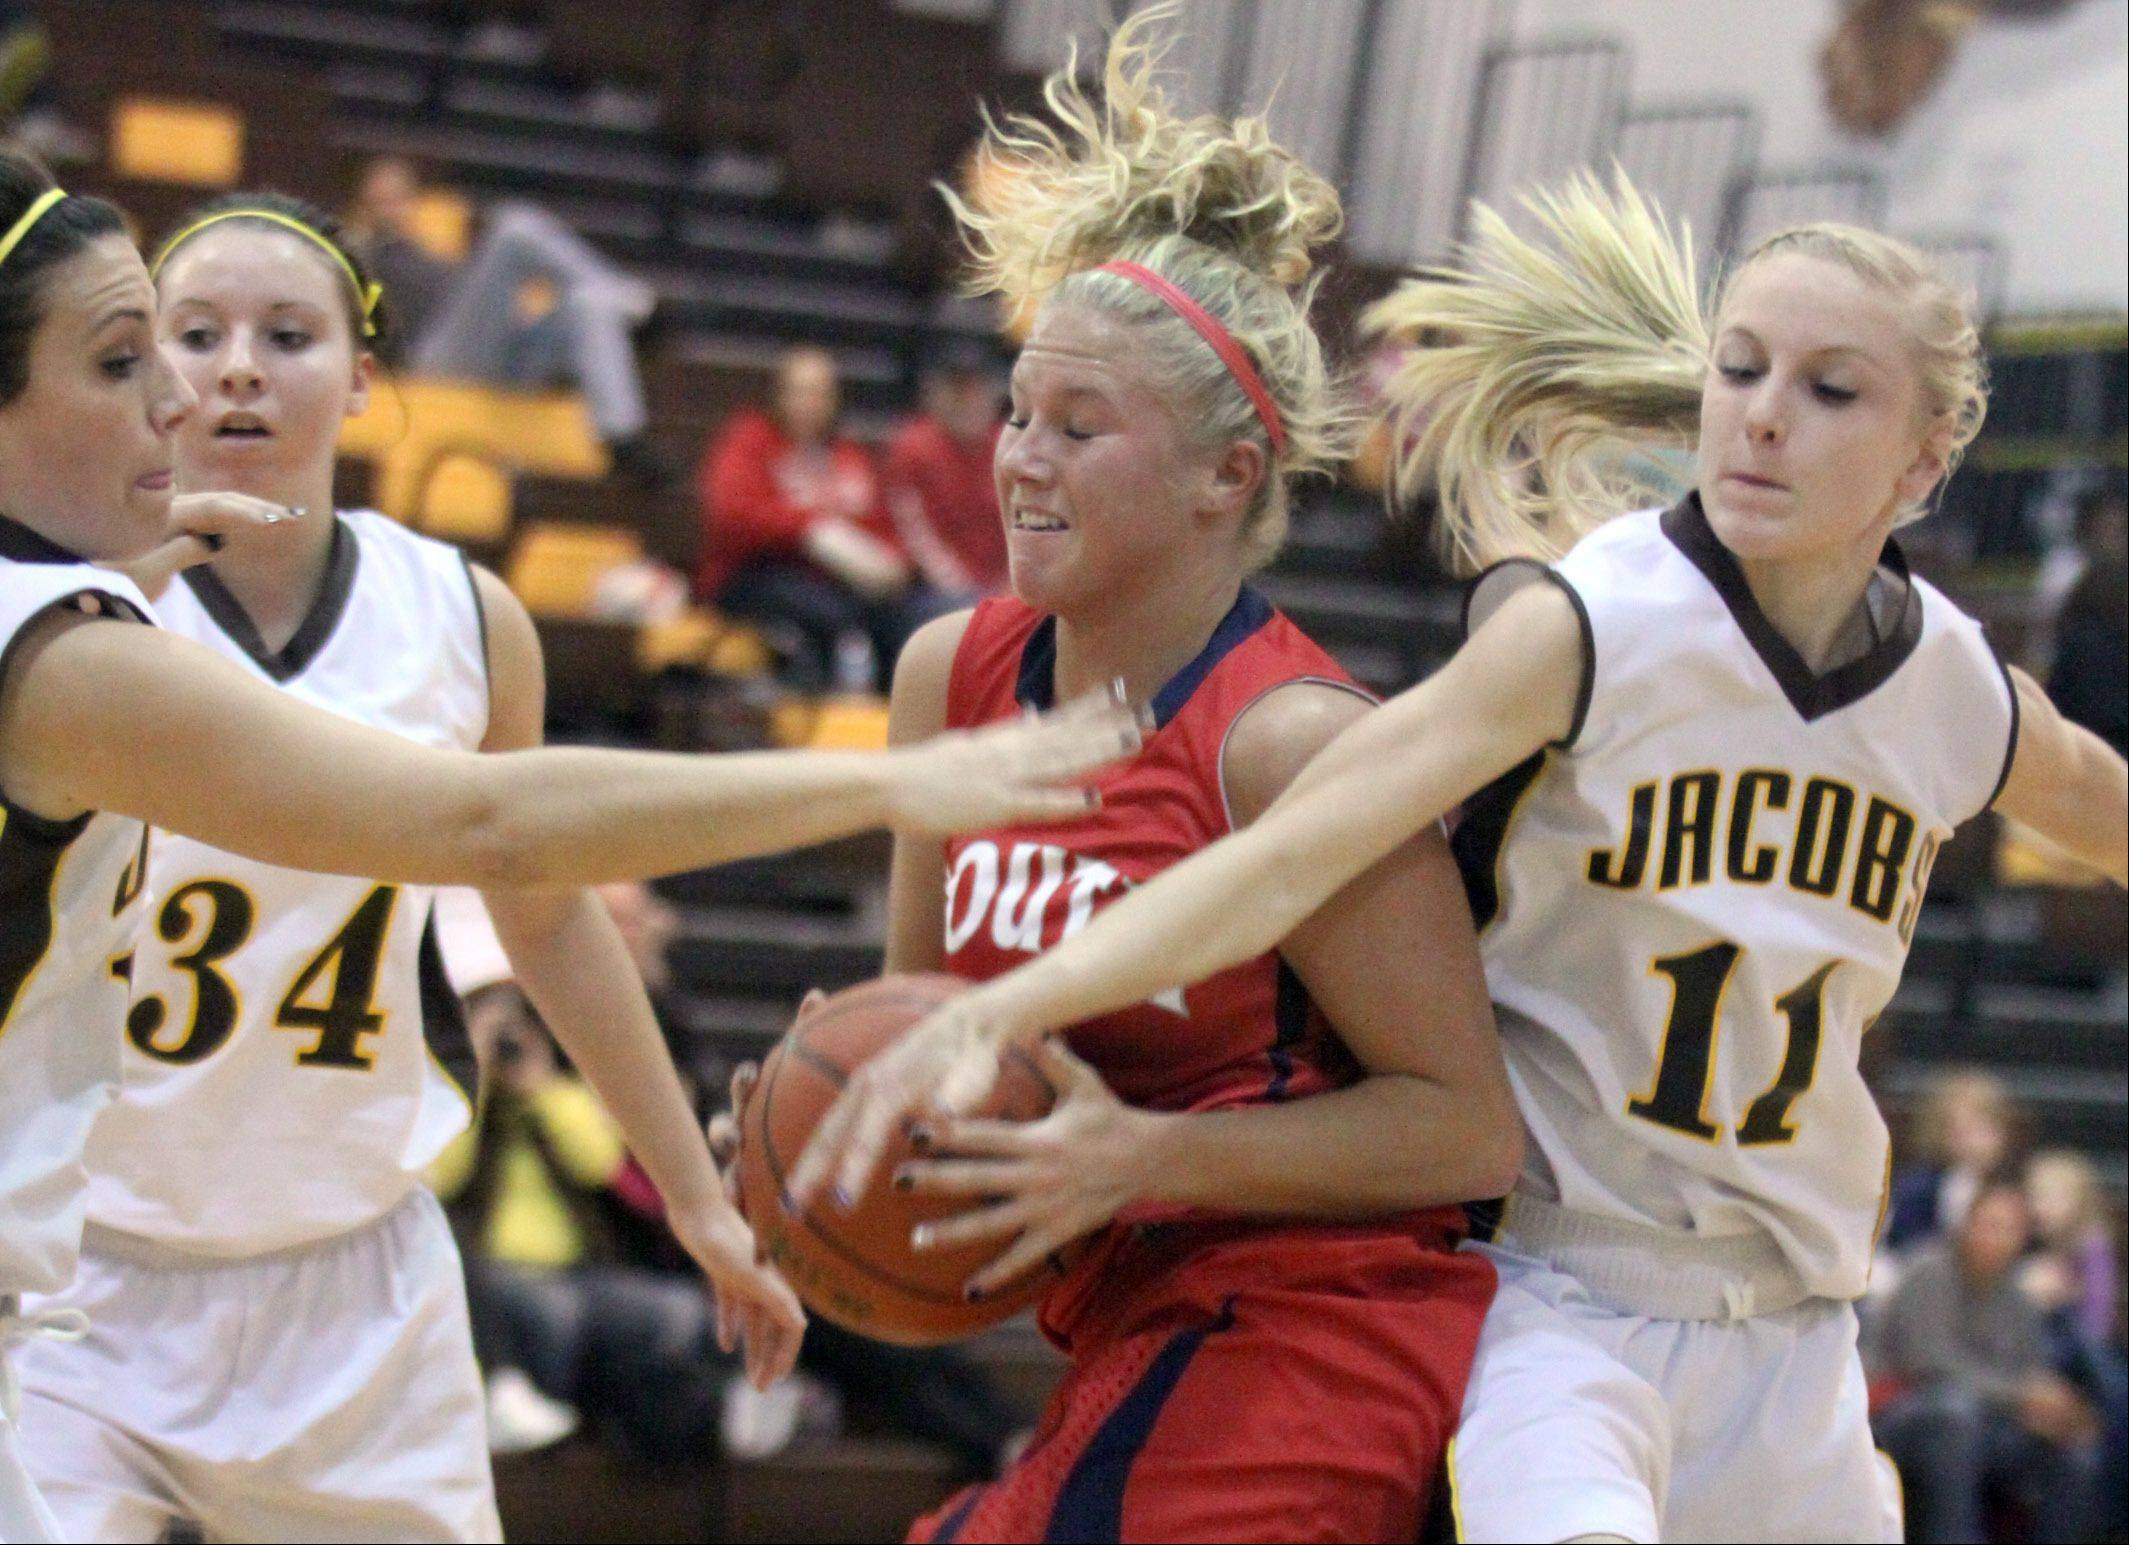 Balanced South Elgin thwarts Jacobs